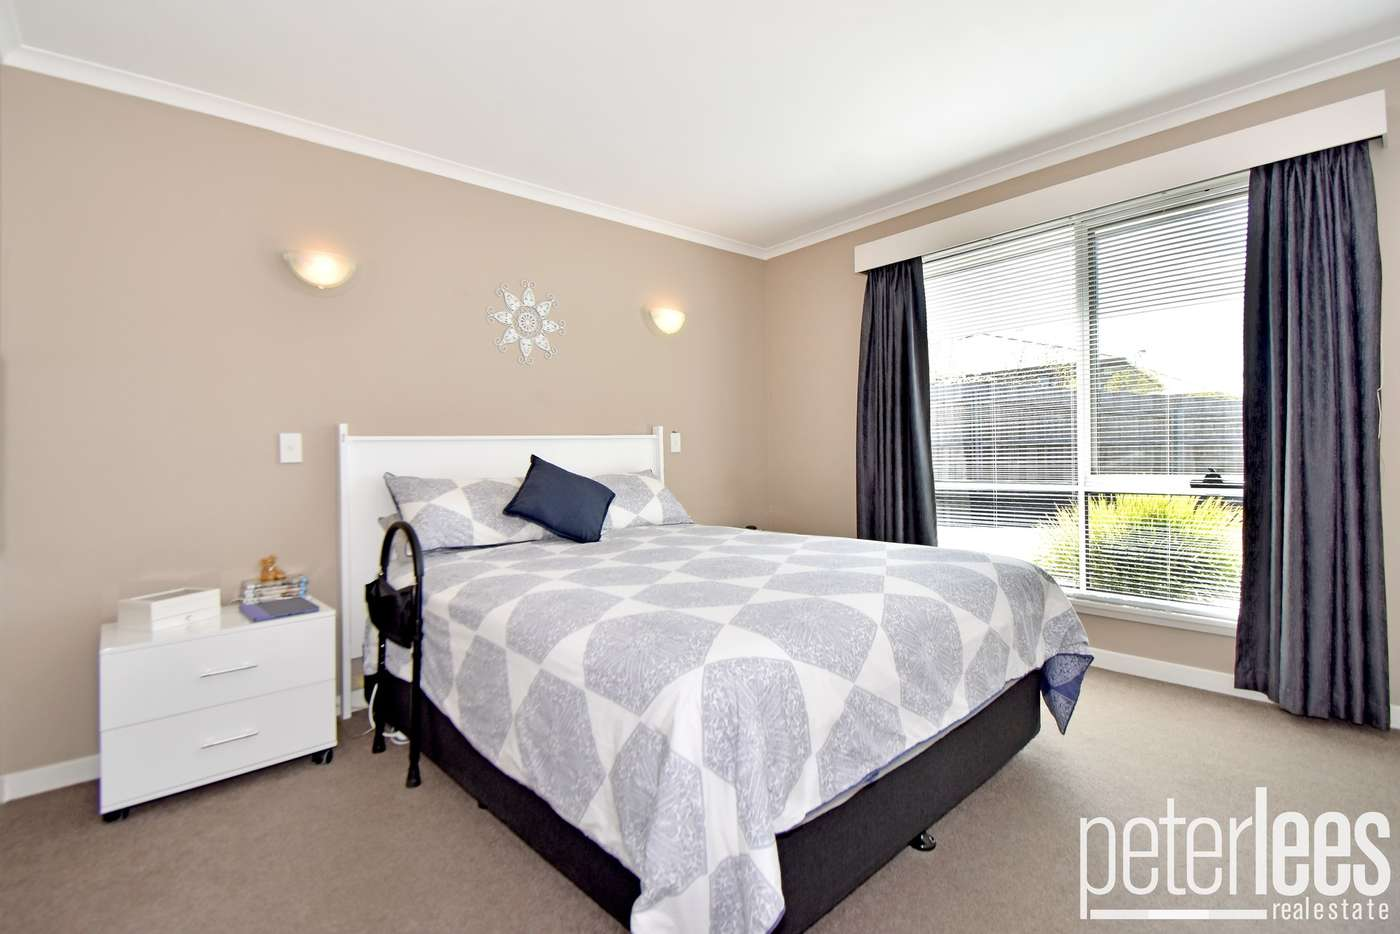 Fifth view of Homely house listing, 14 Sarah Court, Summerhill TAS 7250